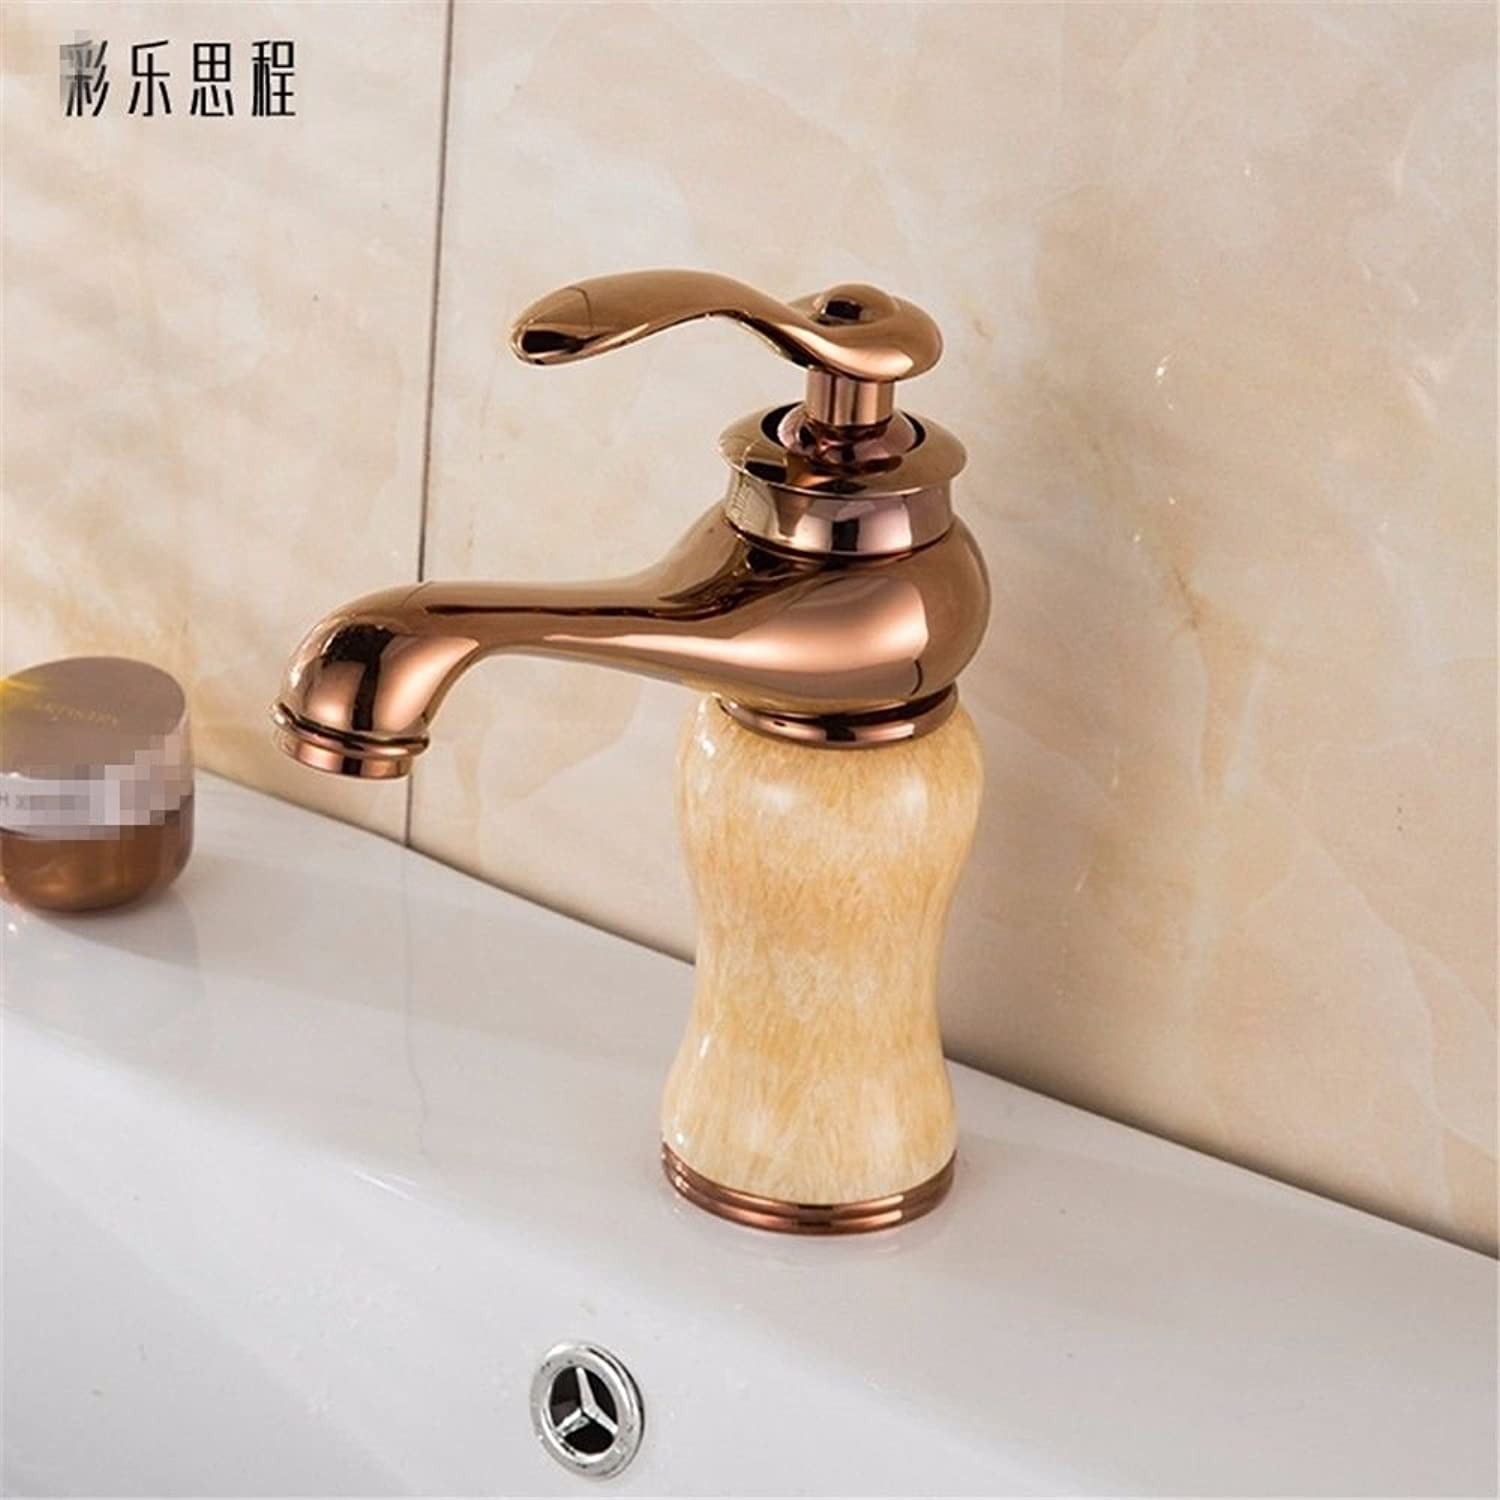 Commercial Single Lever Pull Down Kitchen Sink Faucet Brass Copper Antique European Marble Old Bathroom Hot and Cold Faucet Bathroom Single Hole Above Counter Basin Kitchen Bathroom Vanity